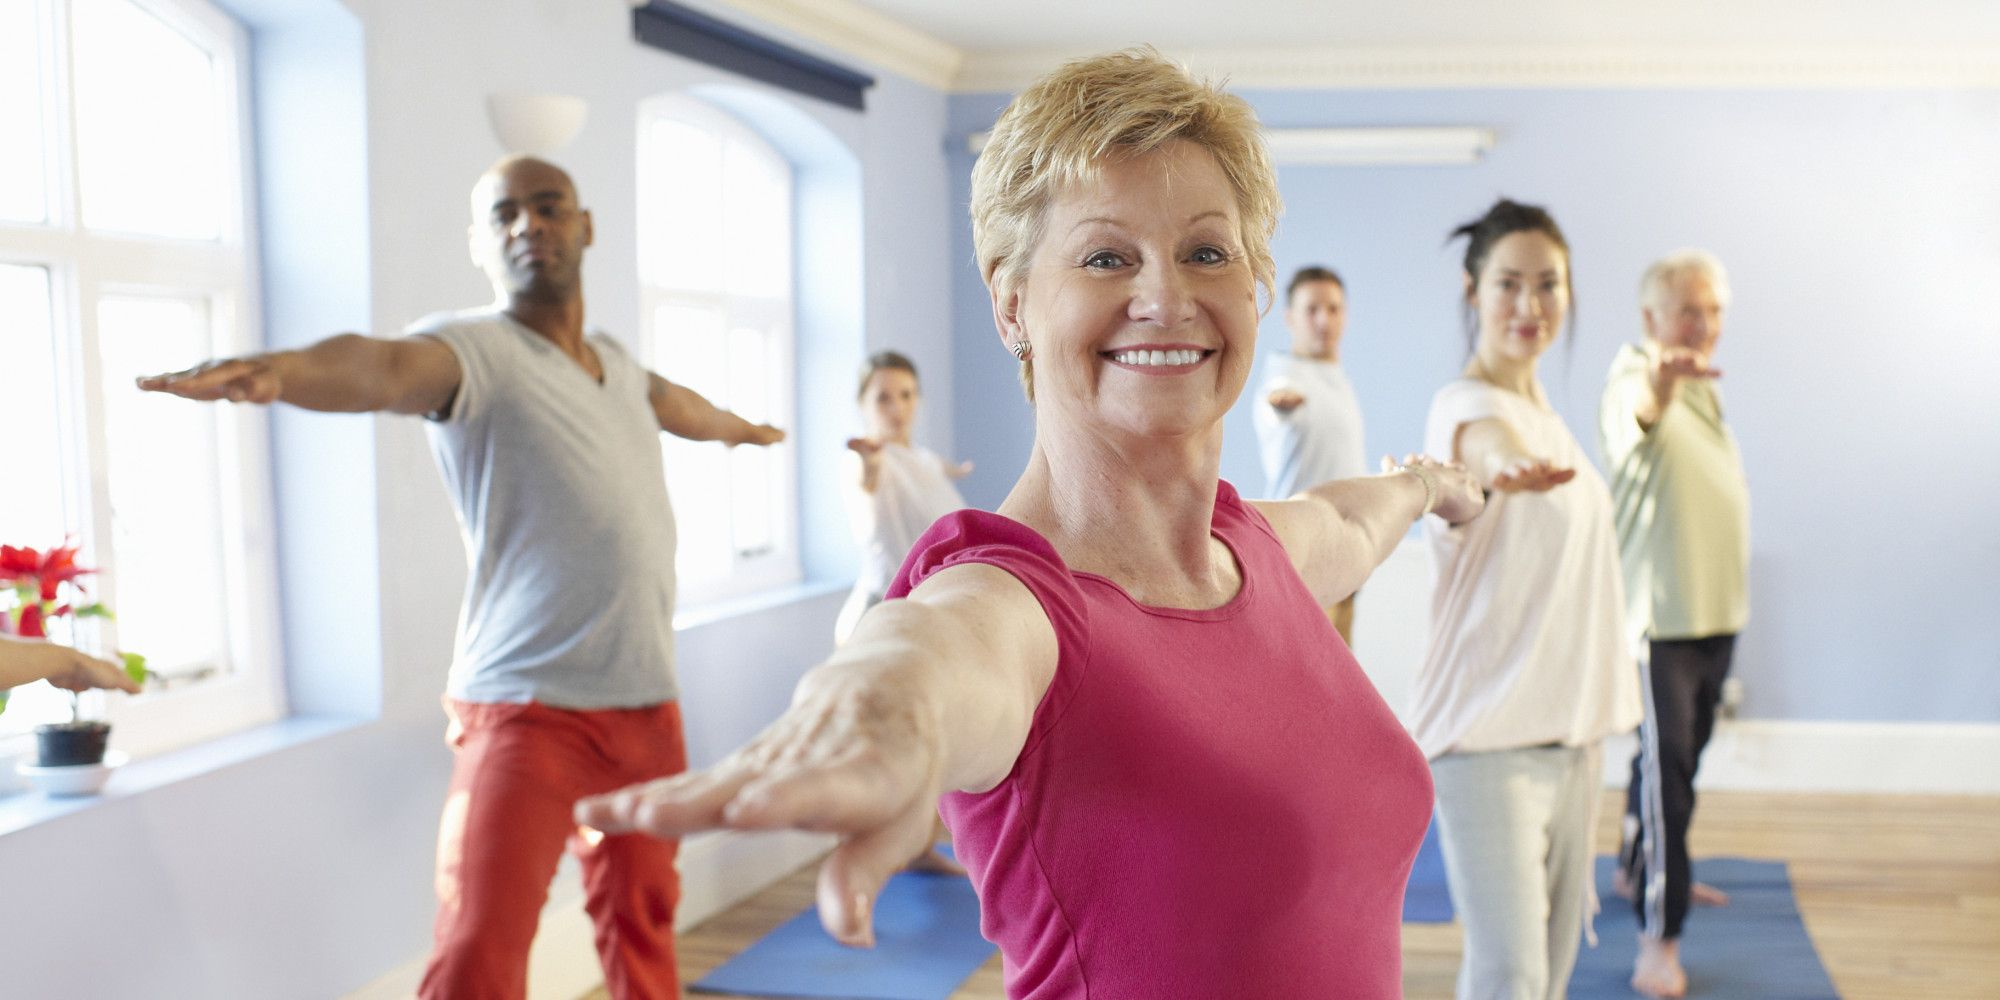 Doing This Exercise May Boost Brain Function In Older Adults